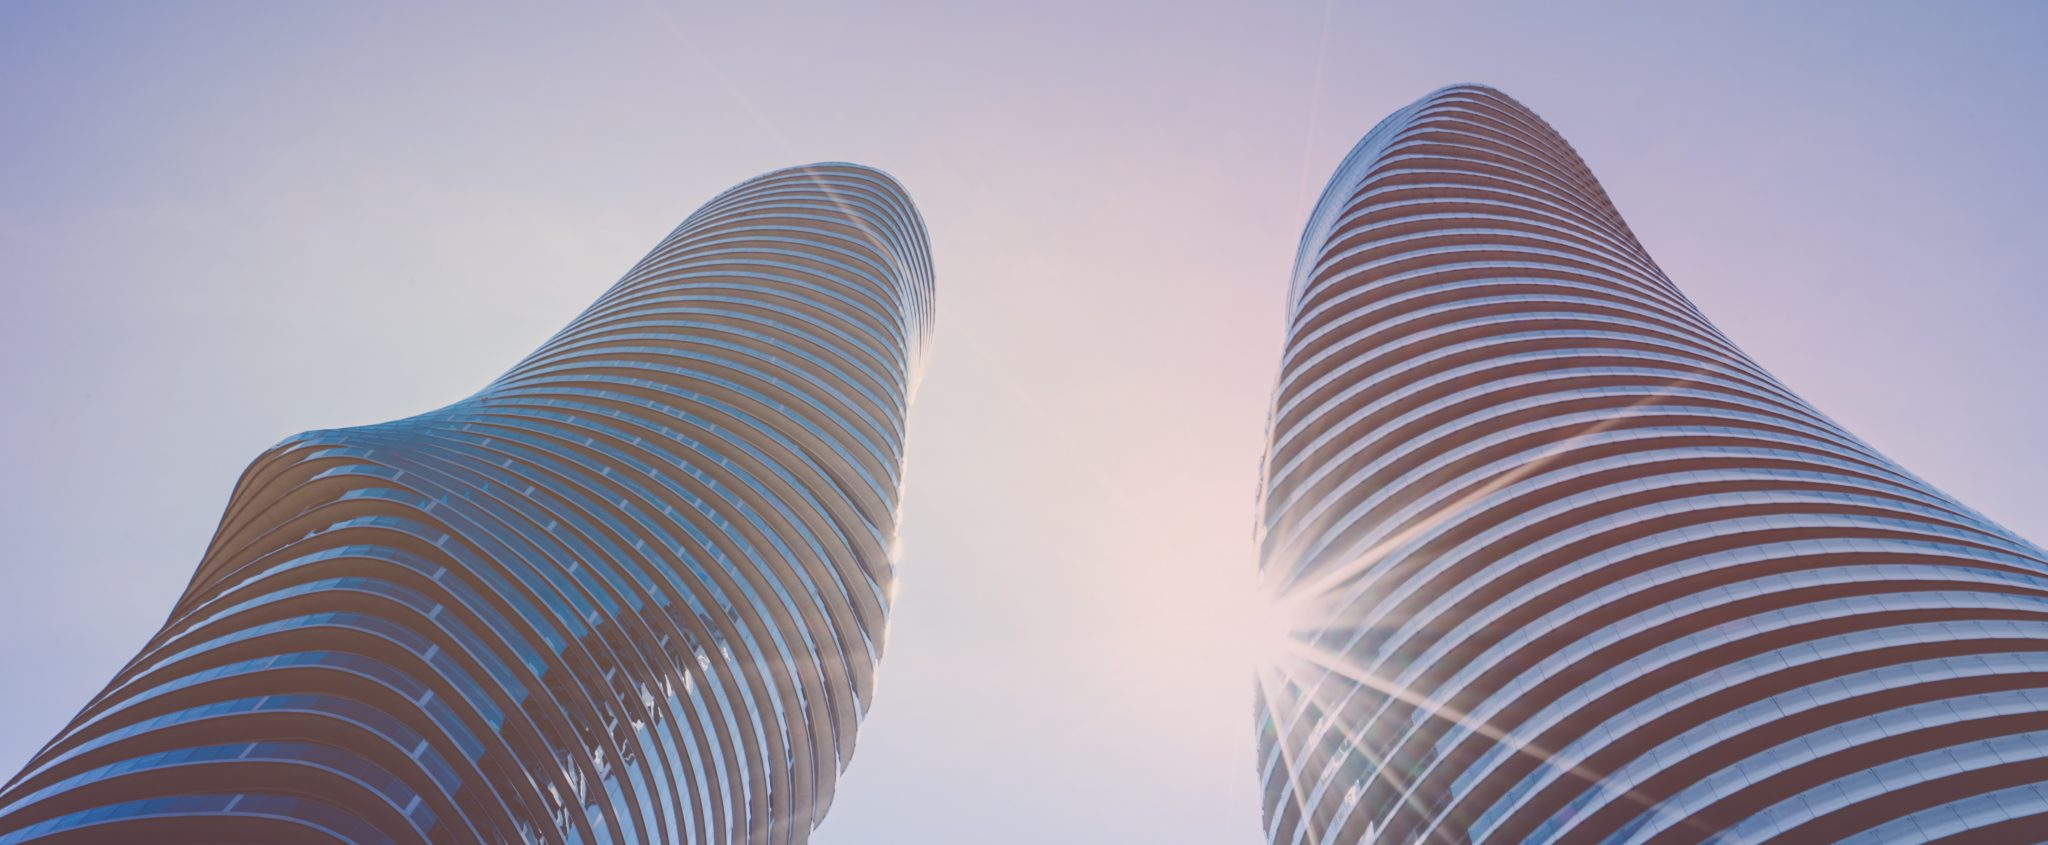 Absolute Towers from Below for 5 things that affect condo value